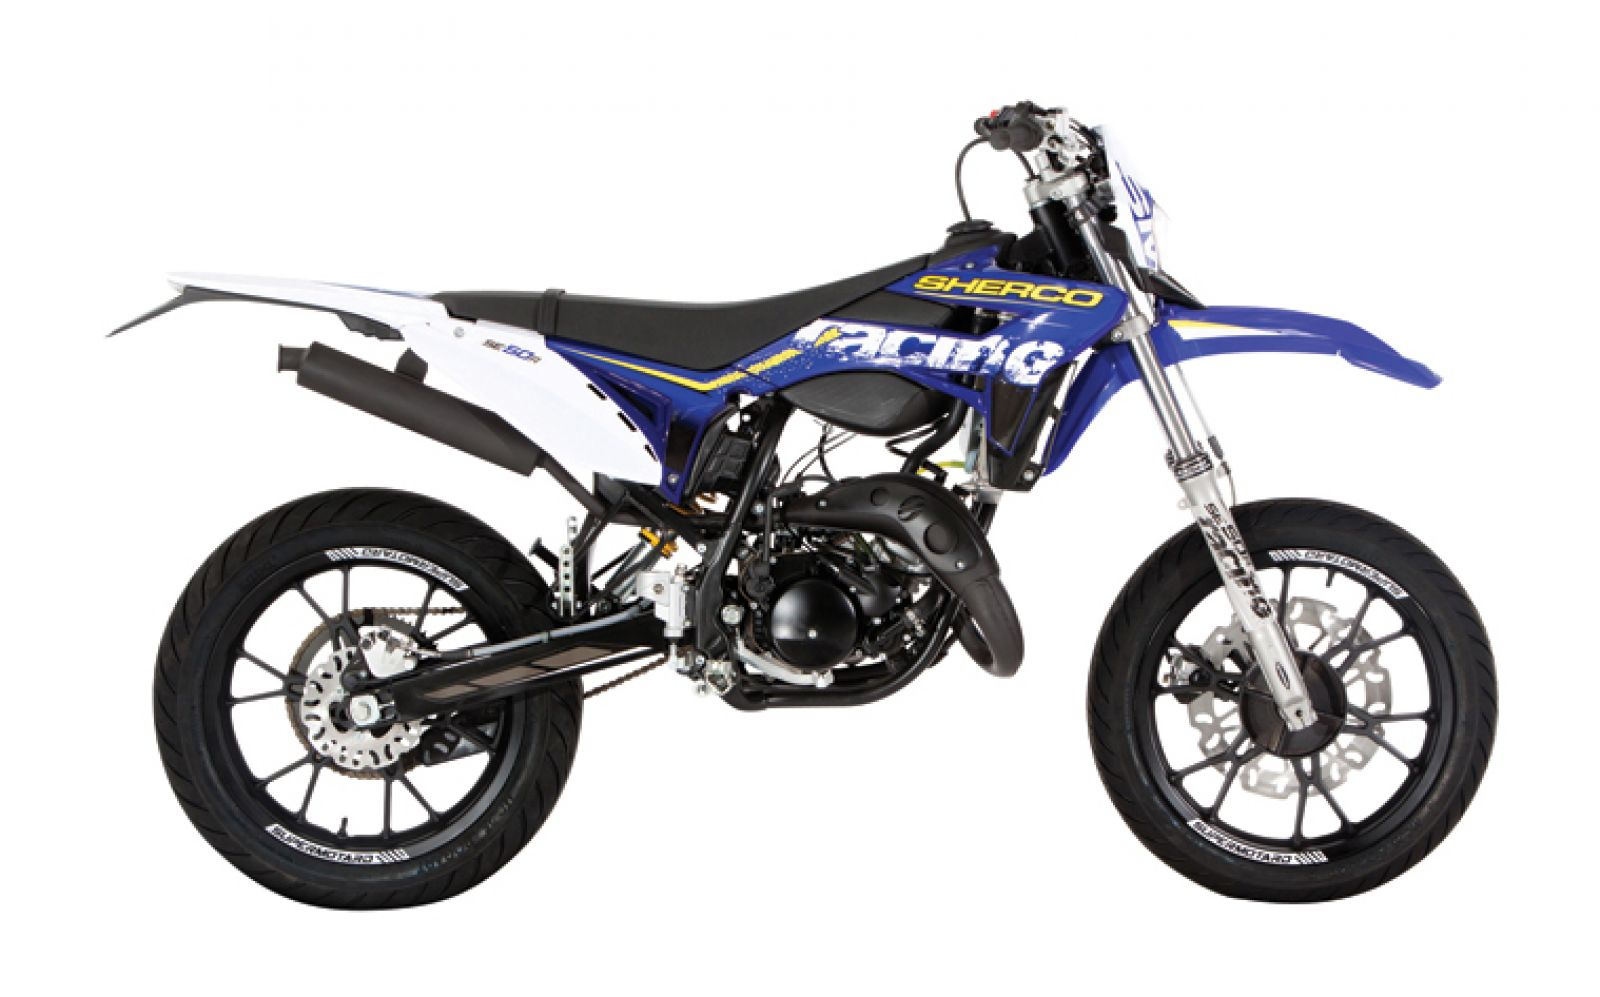 2004 Sherco Supermotard 50 cc #10